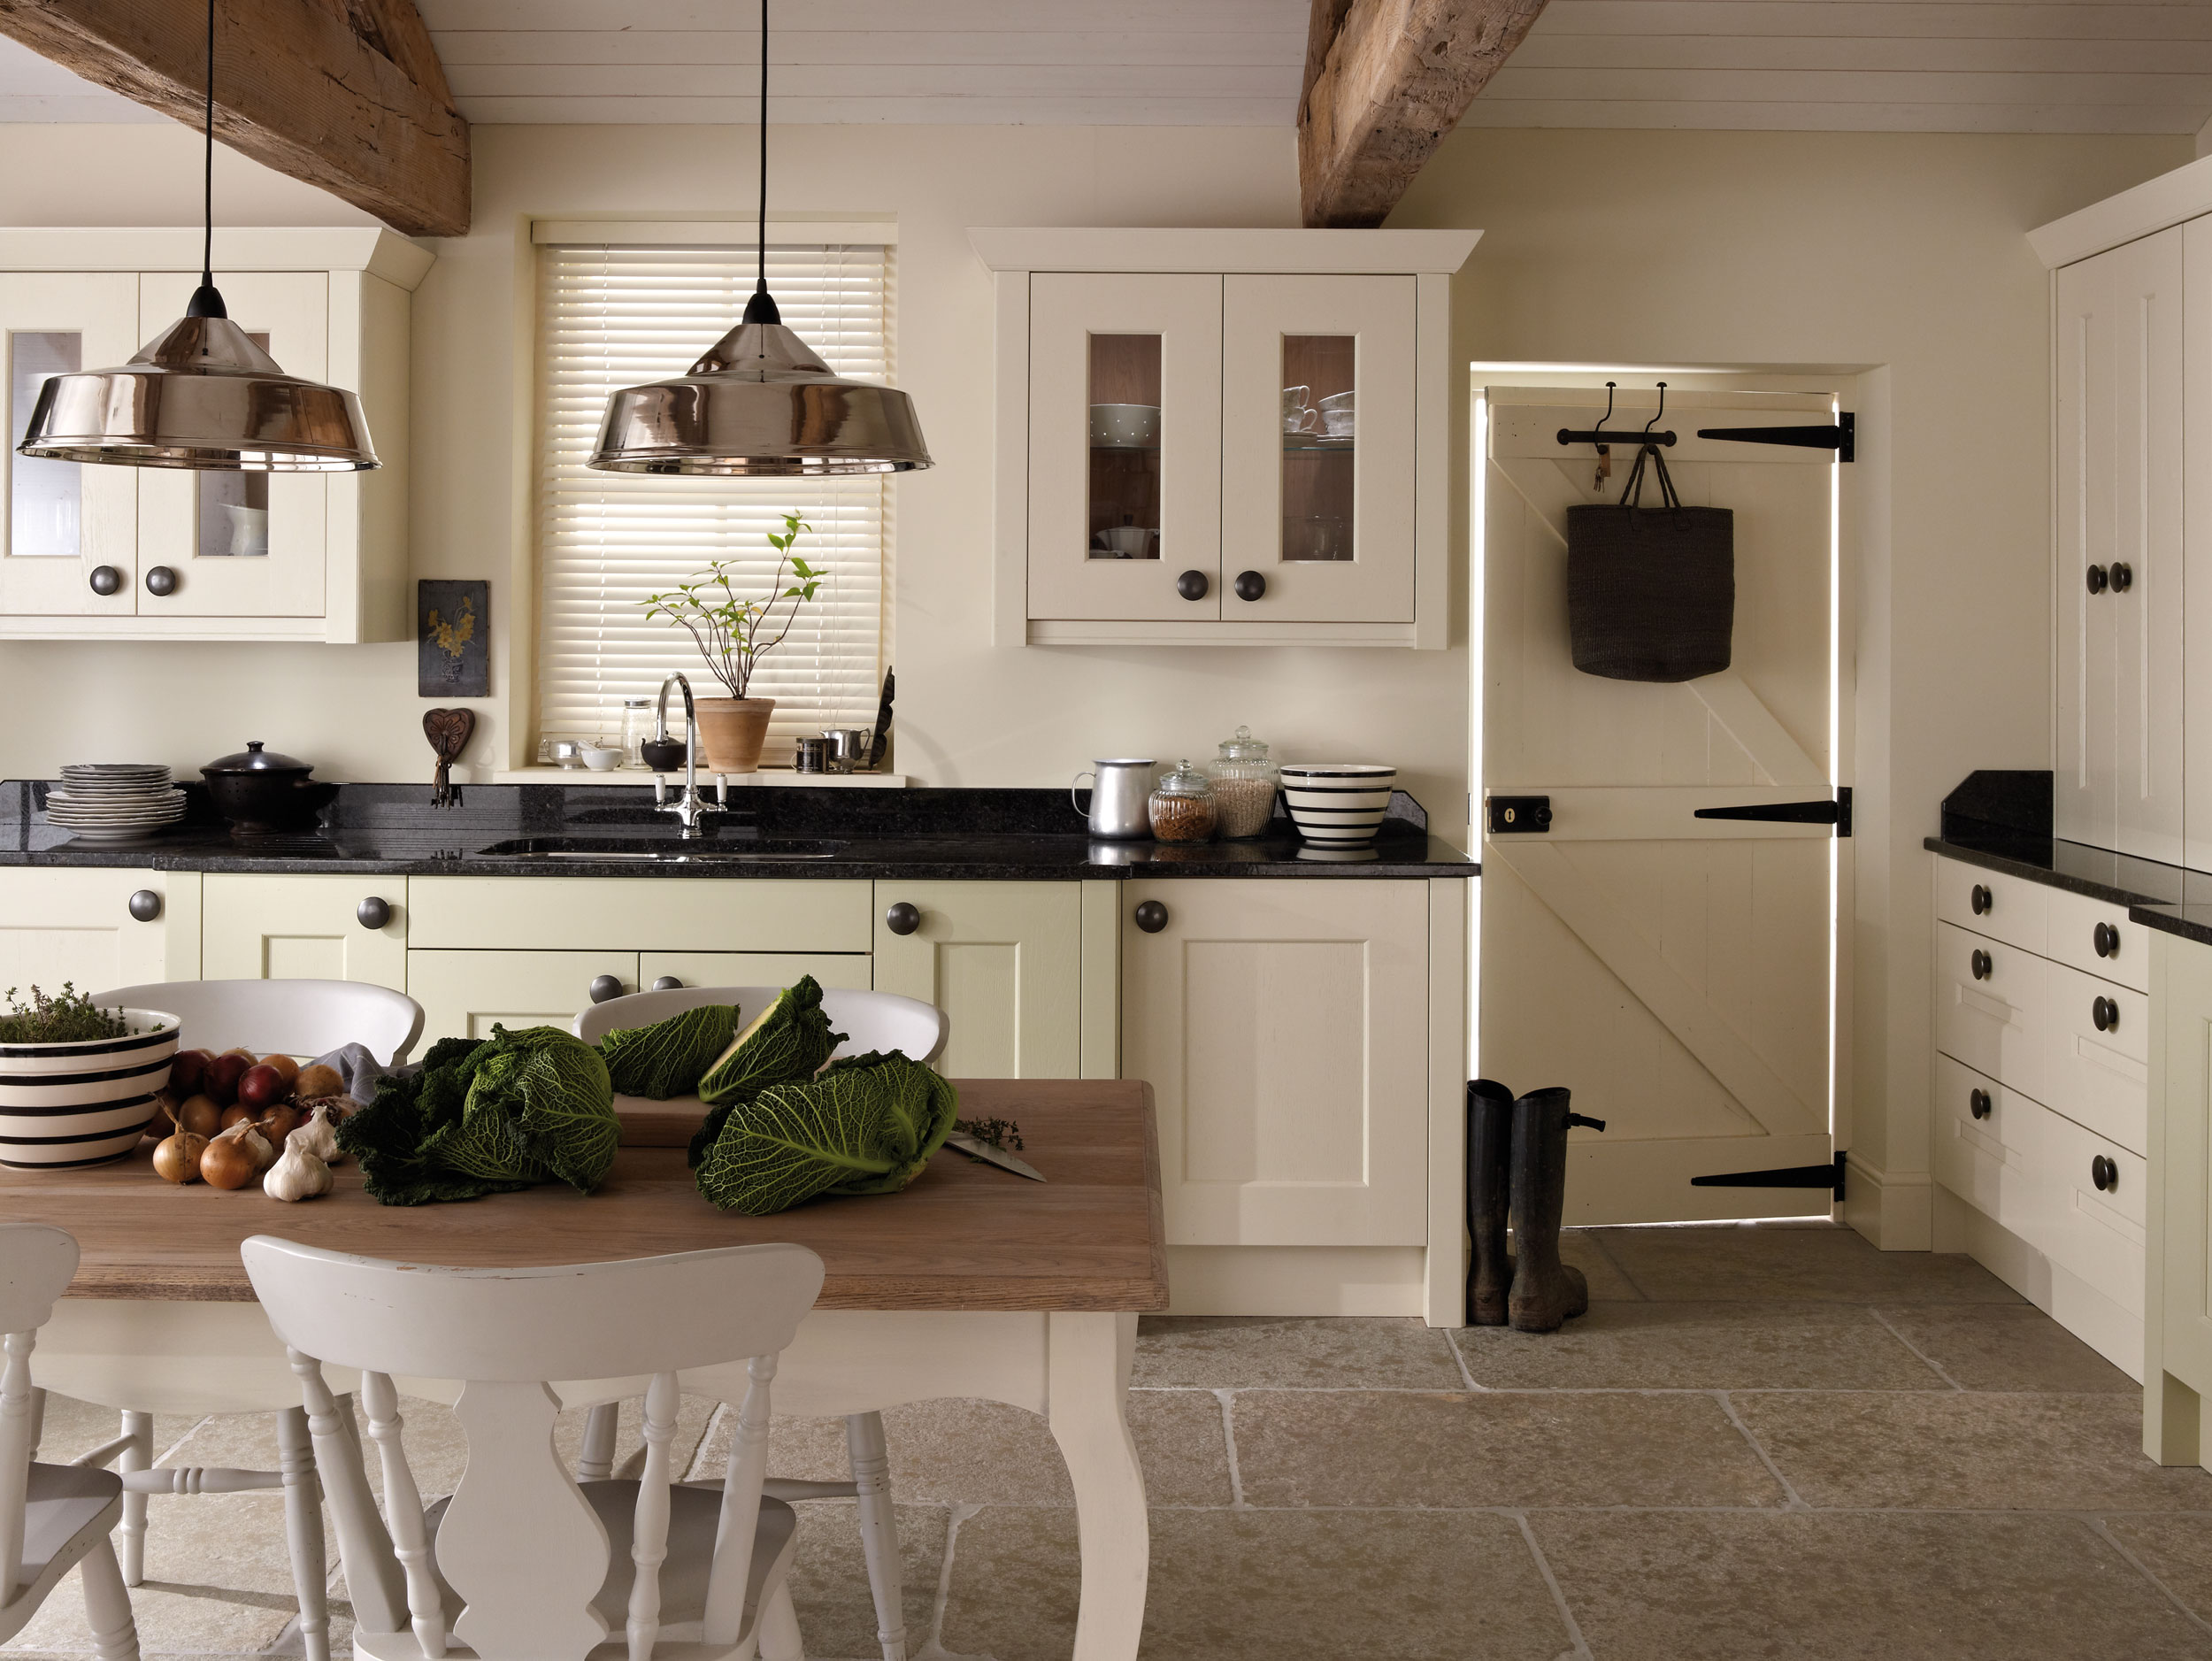 kitchen-ideas-appealing-country-style-kitchen-units-country-style-kitchen-designs-photos-country-style-kitchen-design-ideas-old-style-country-kitchen-designs-country-style-kitchen-design-ideas